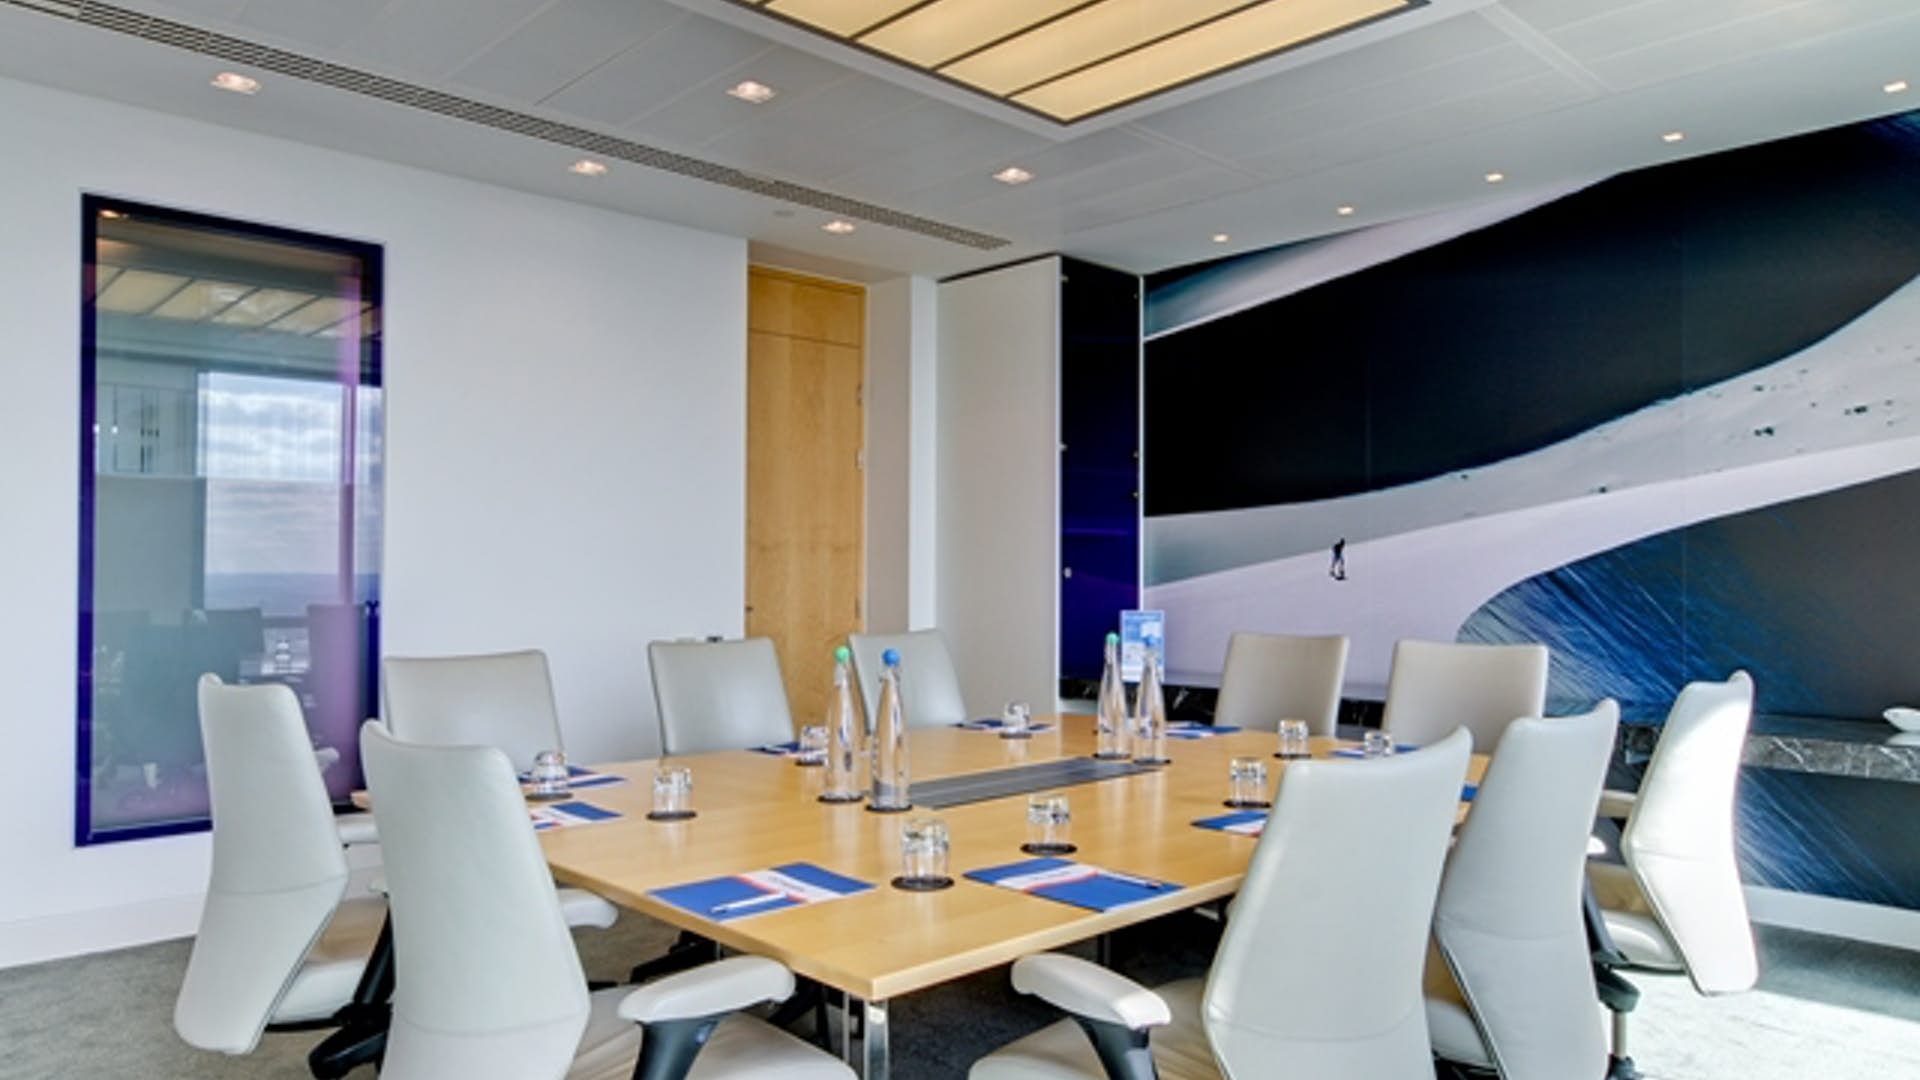 The Board Rooms | Film and Photo | CCT Venues Plus - Bank